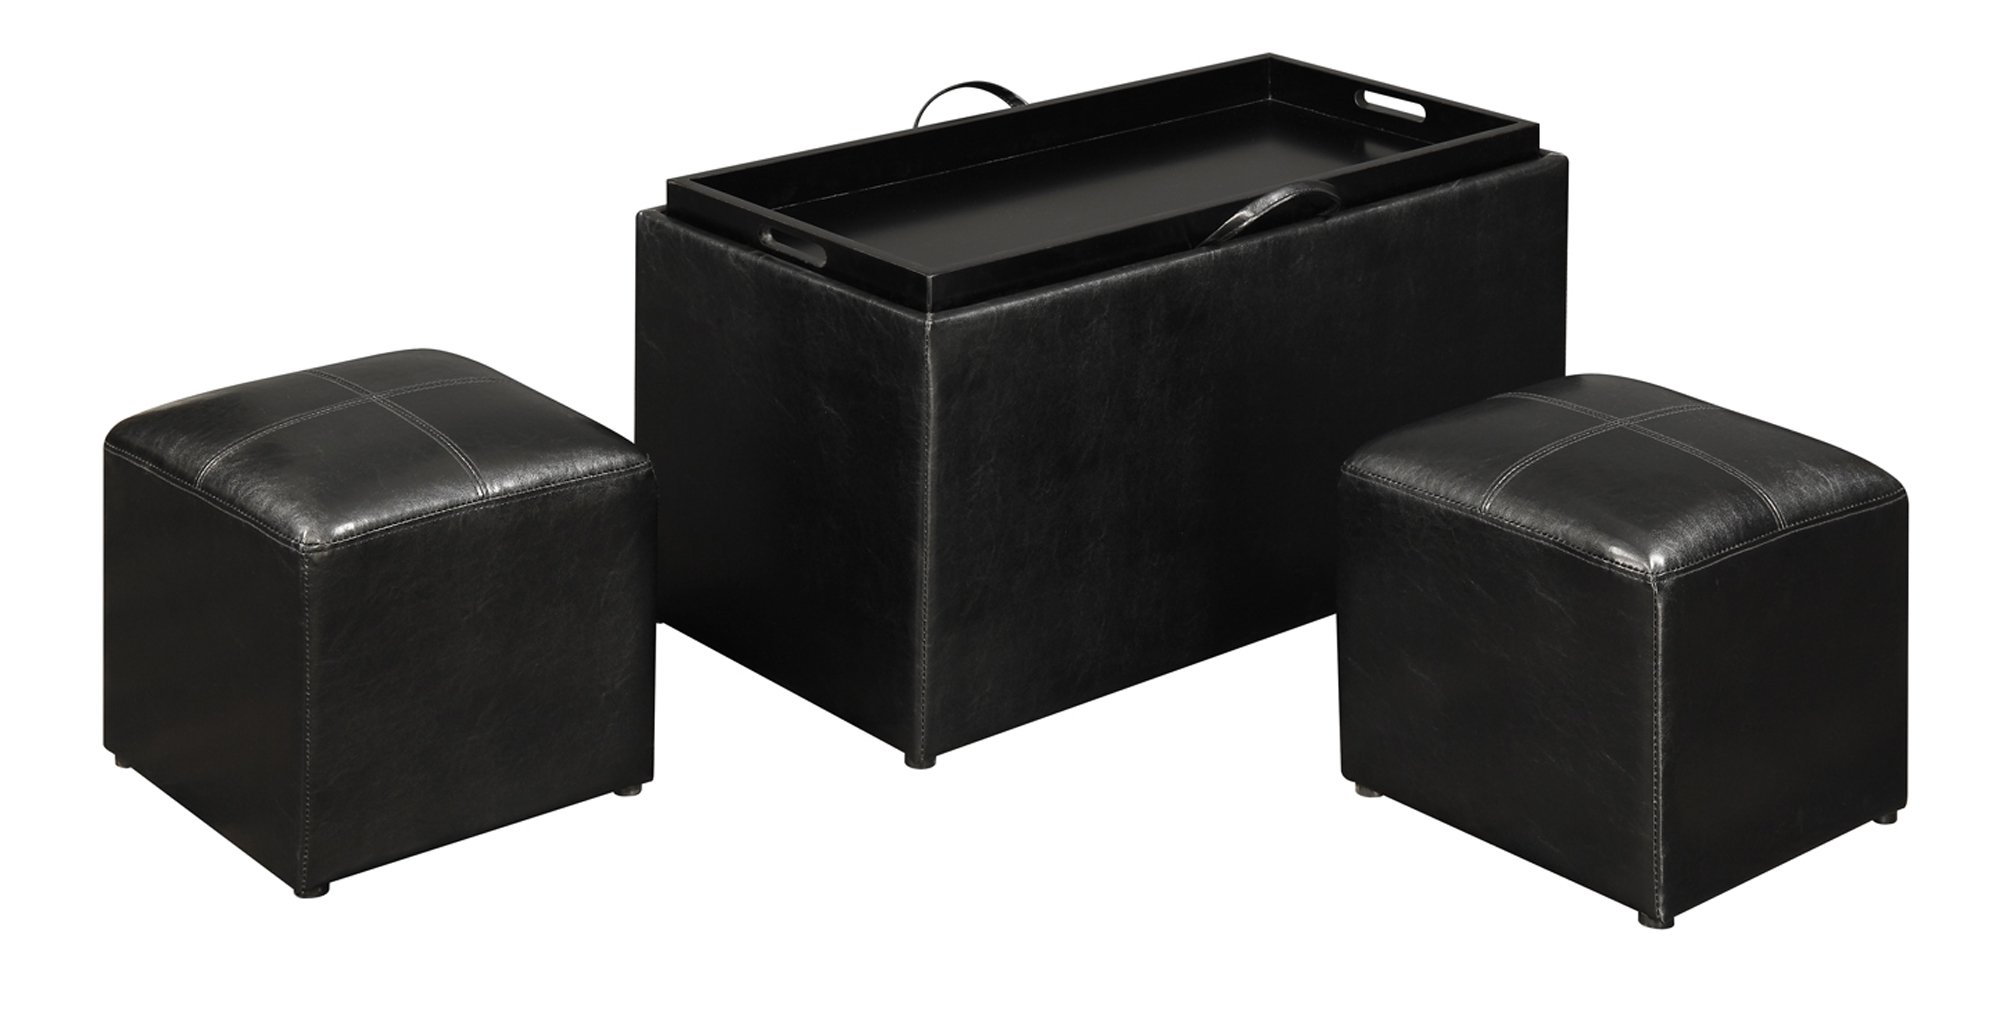 Convenience Concepts Designs4Comfort Sheridan Storage Bench with 2 Side Ottomans, Black by Convenience Concepts